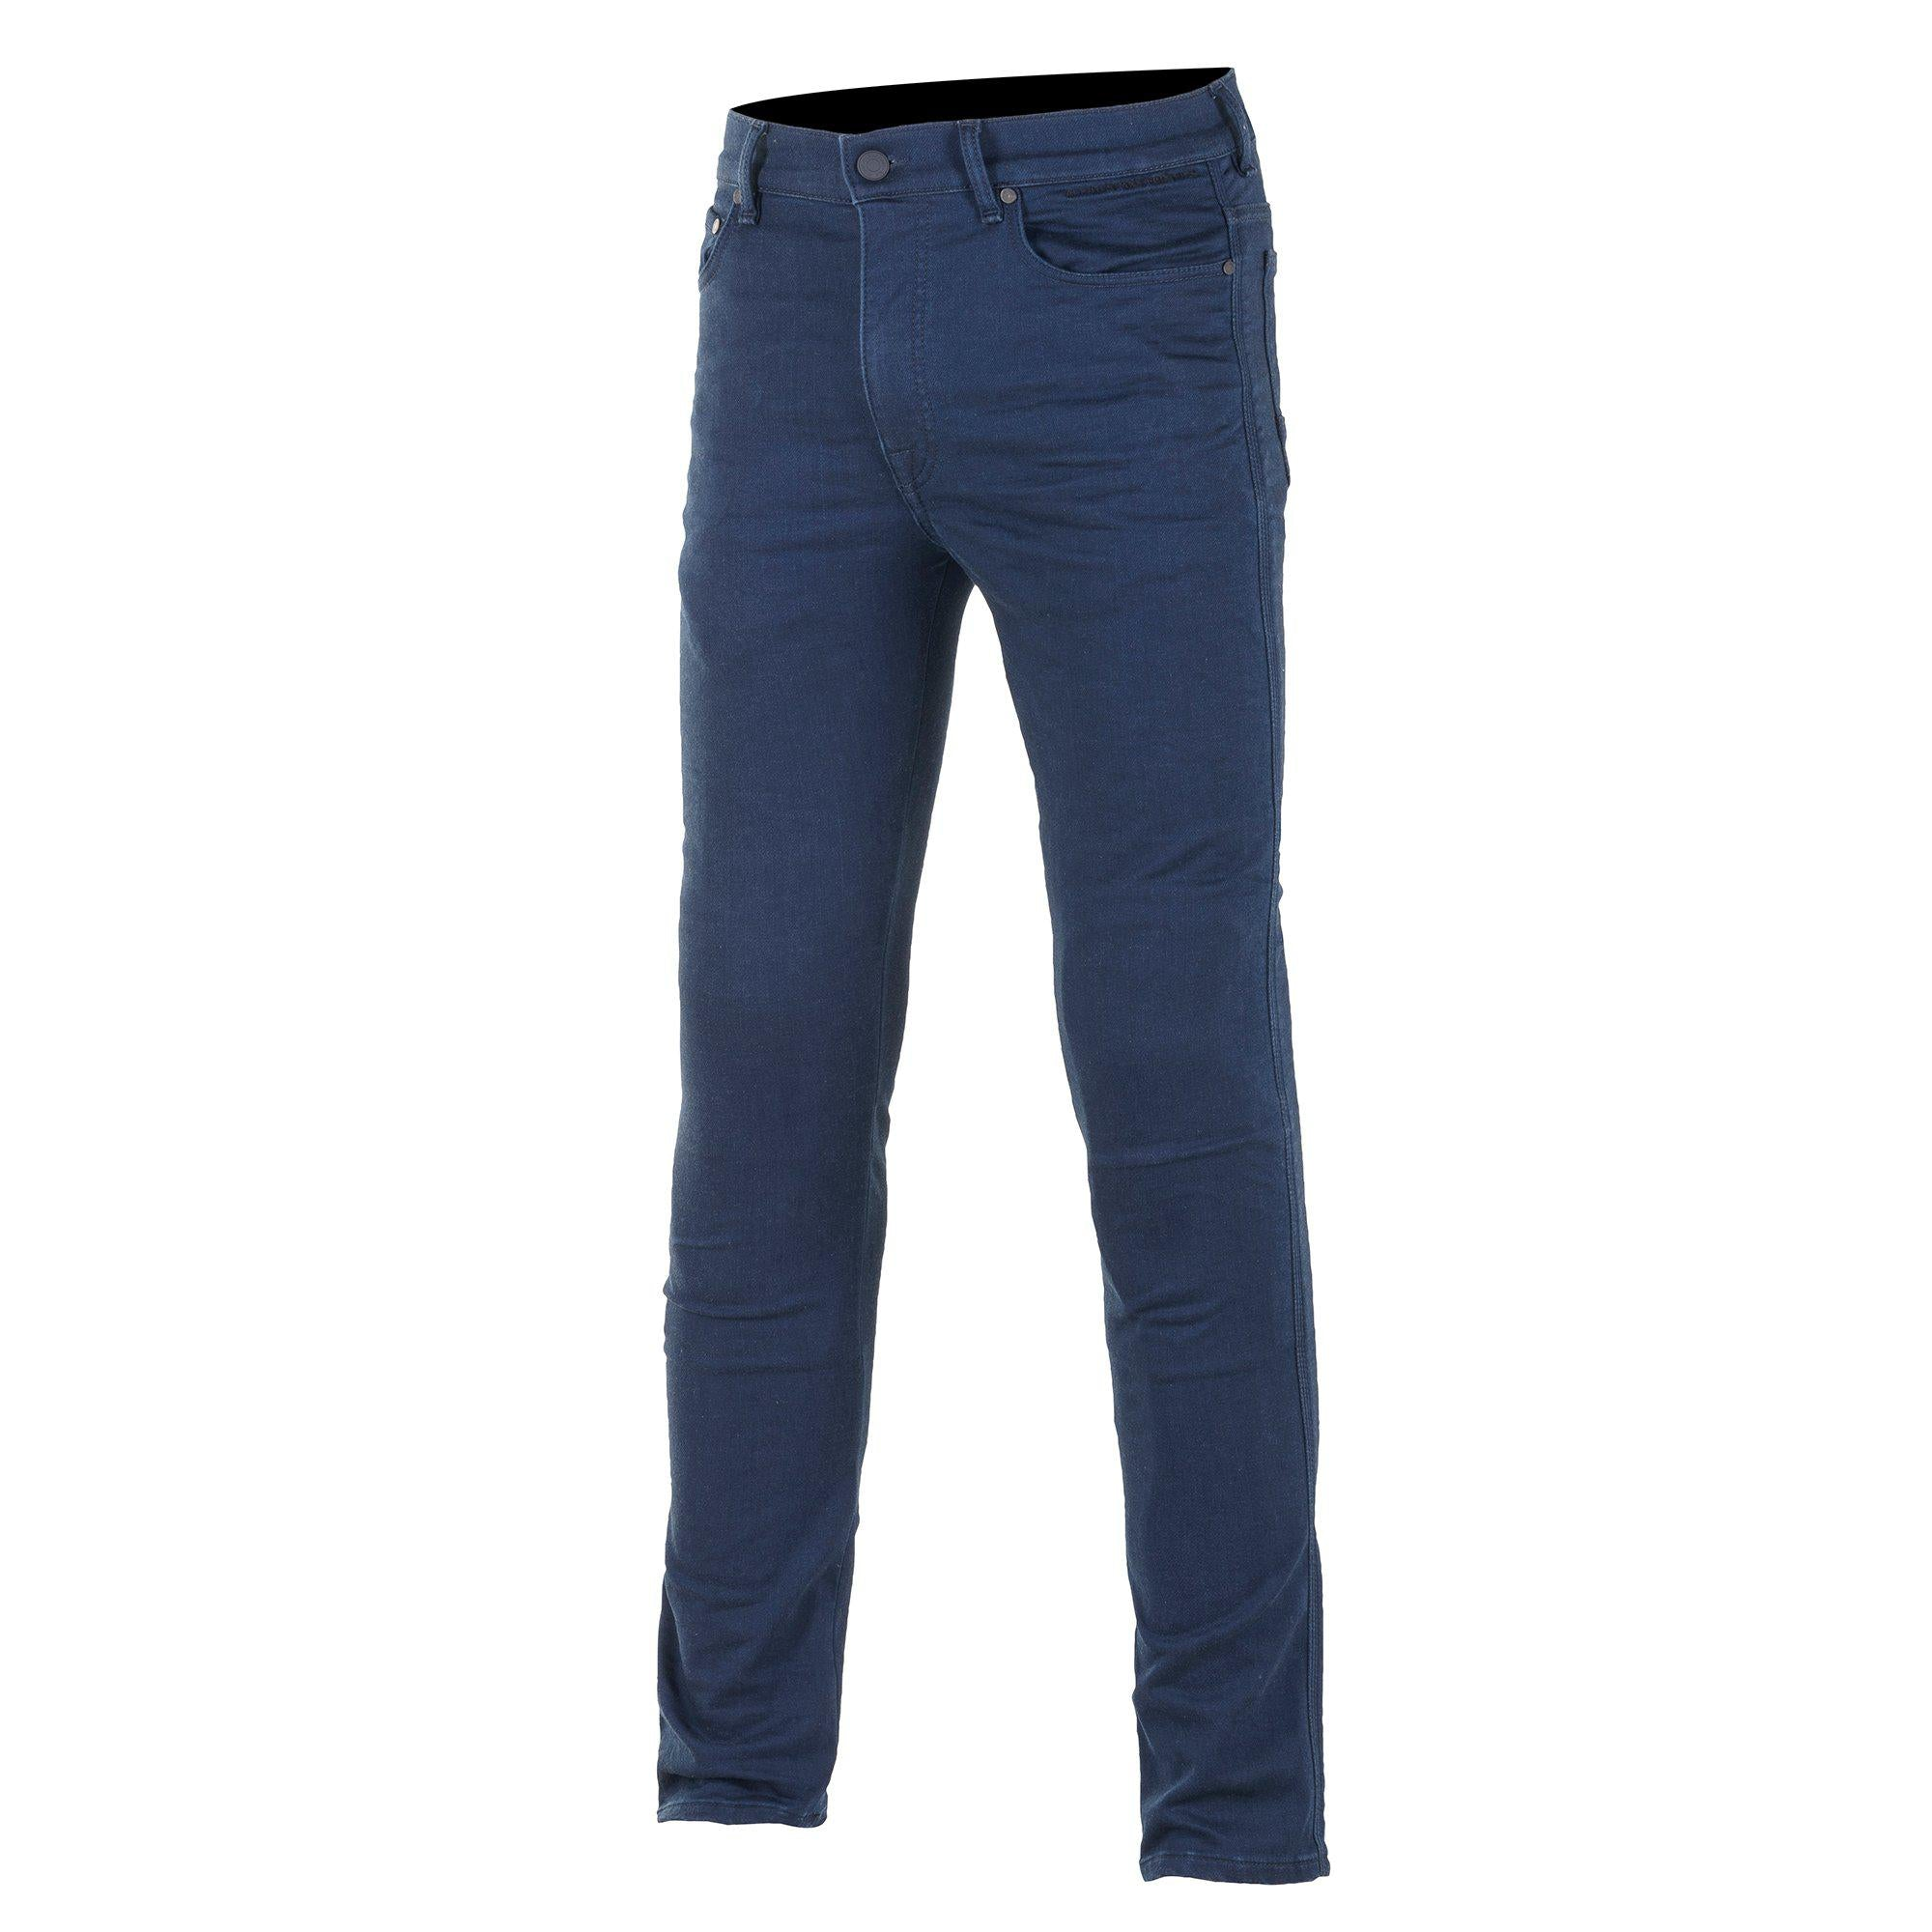 Cerium Tech Stretch Riding Denim